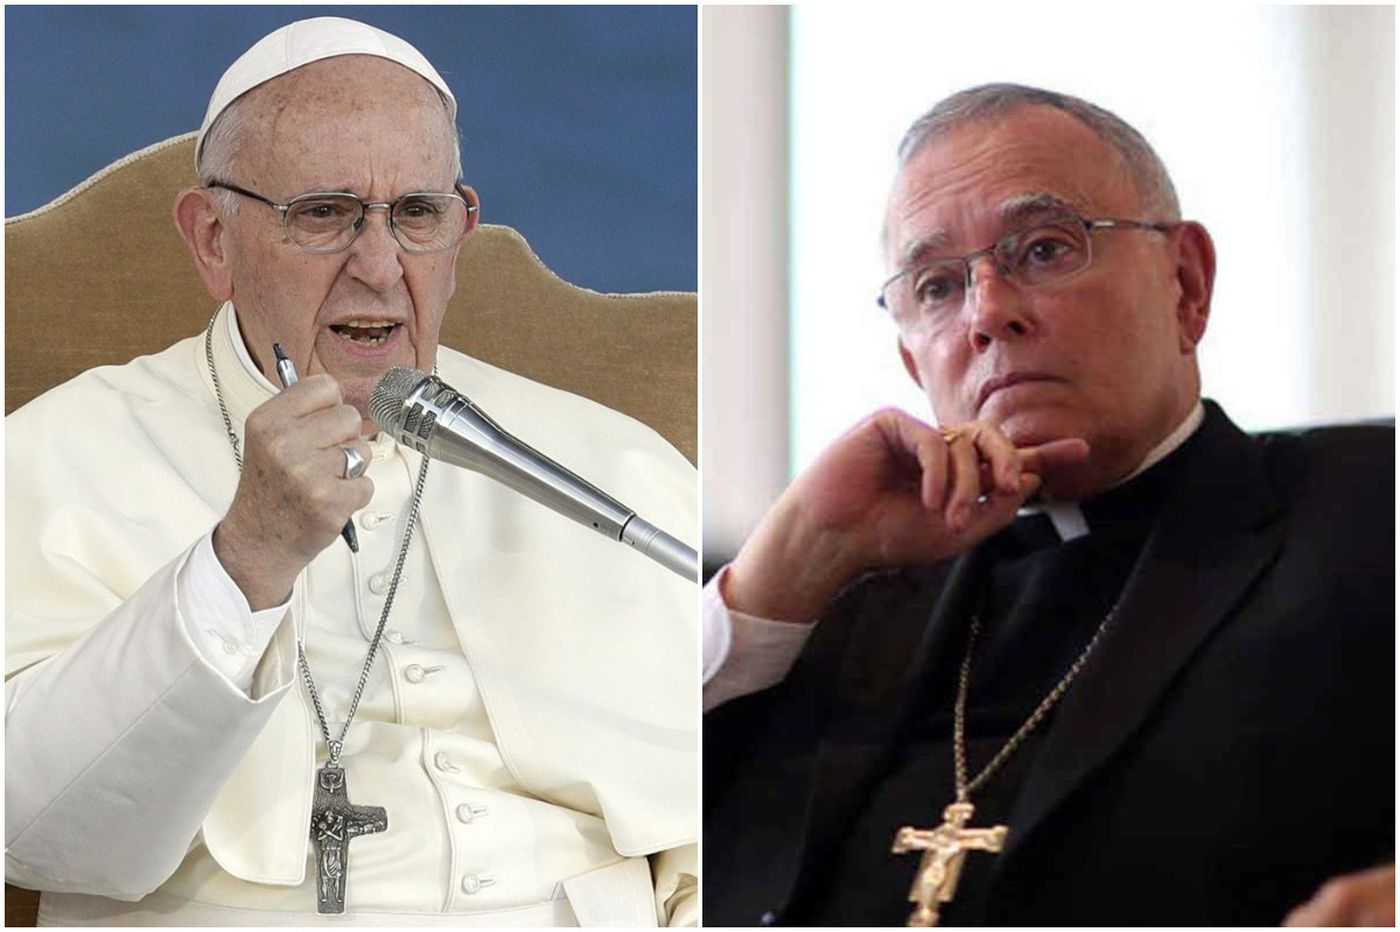 For Archbishop Chaput and Pope Francis, envoy's letter a reminder of past tensions